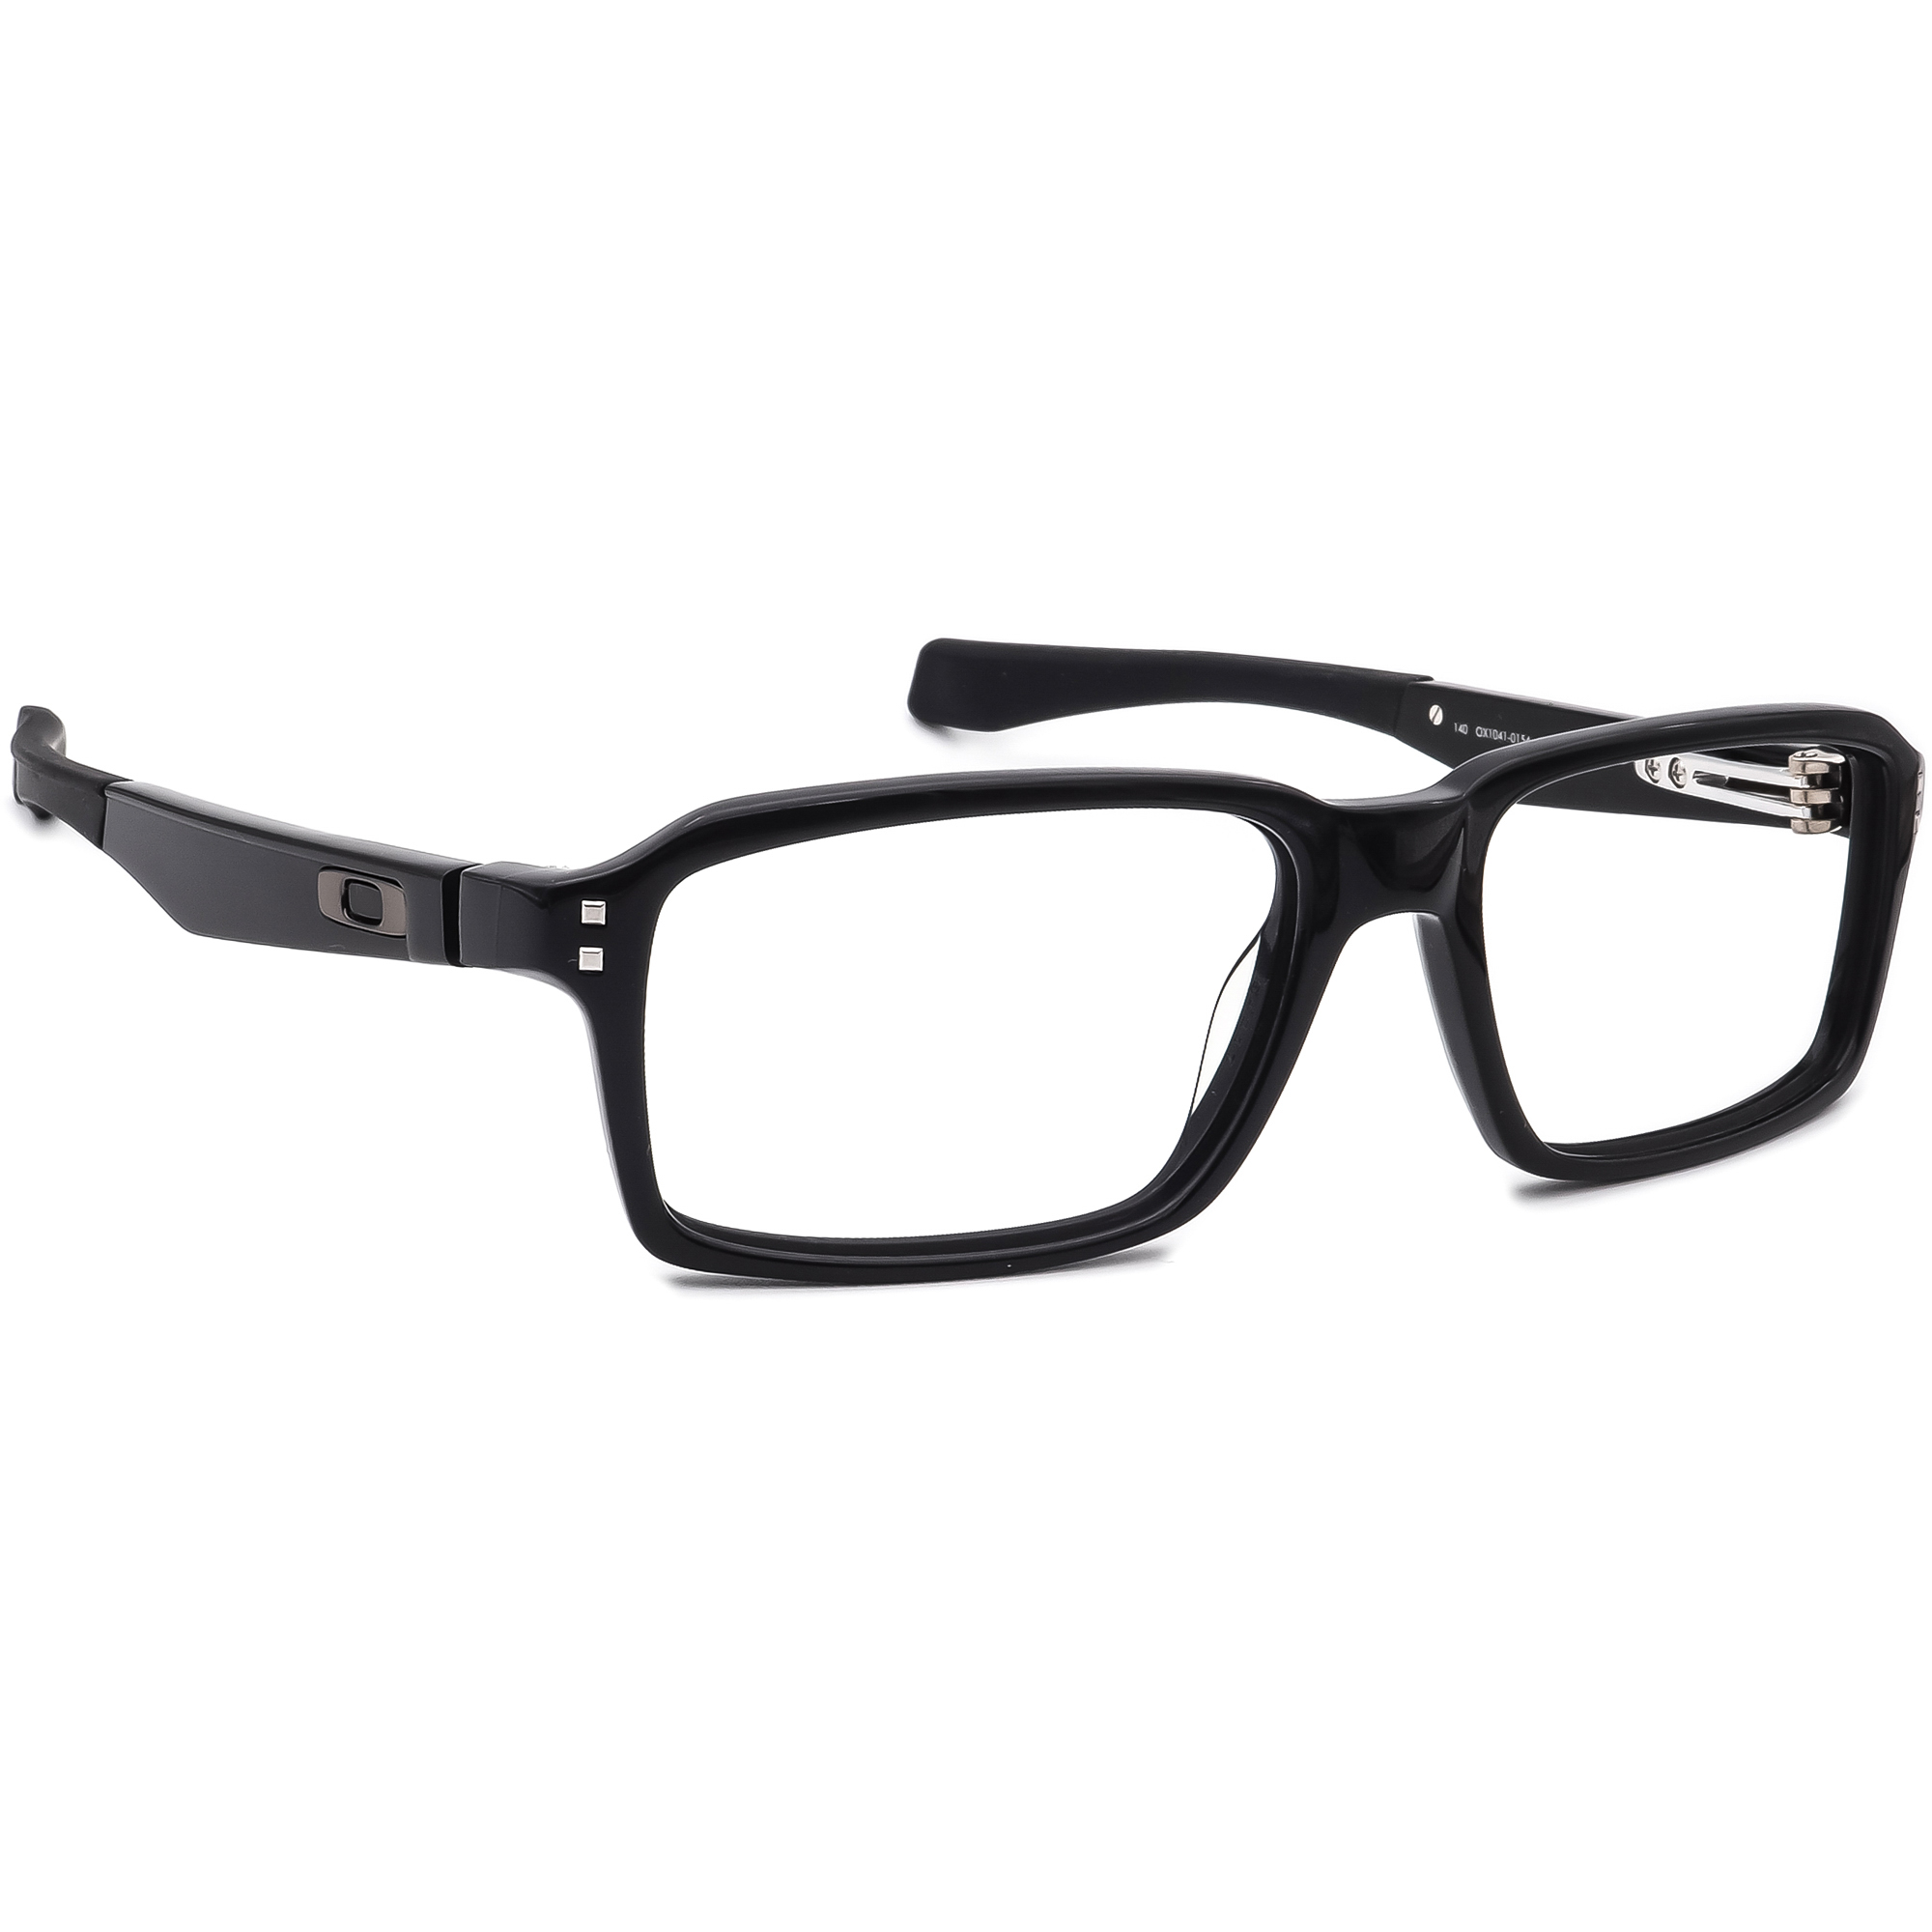 Oakley OX1041-0154 Fat Cat Eyeglasses